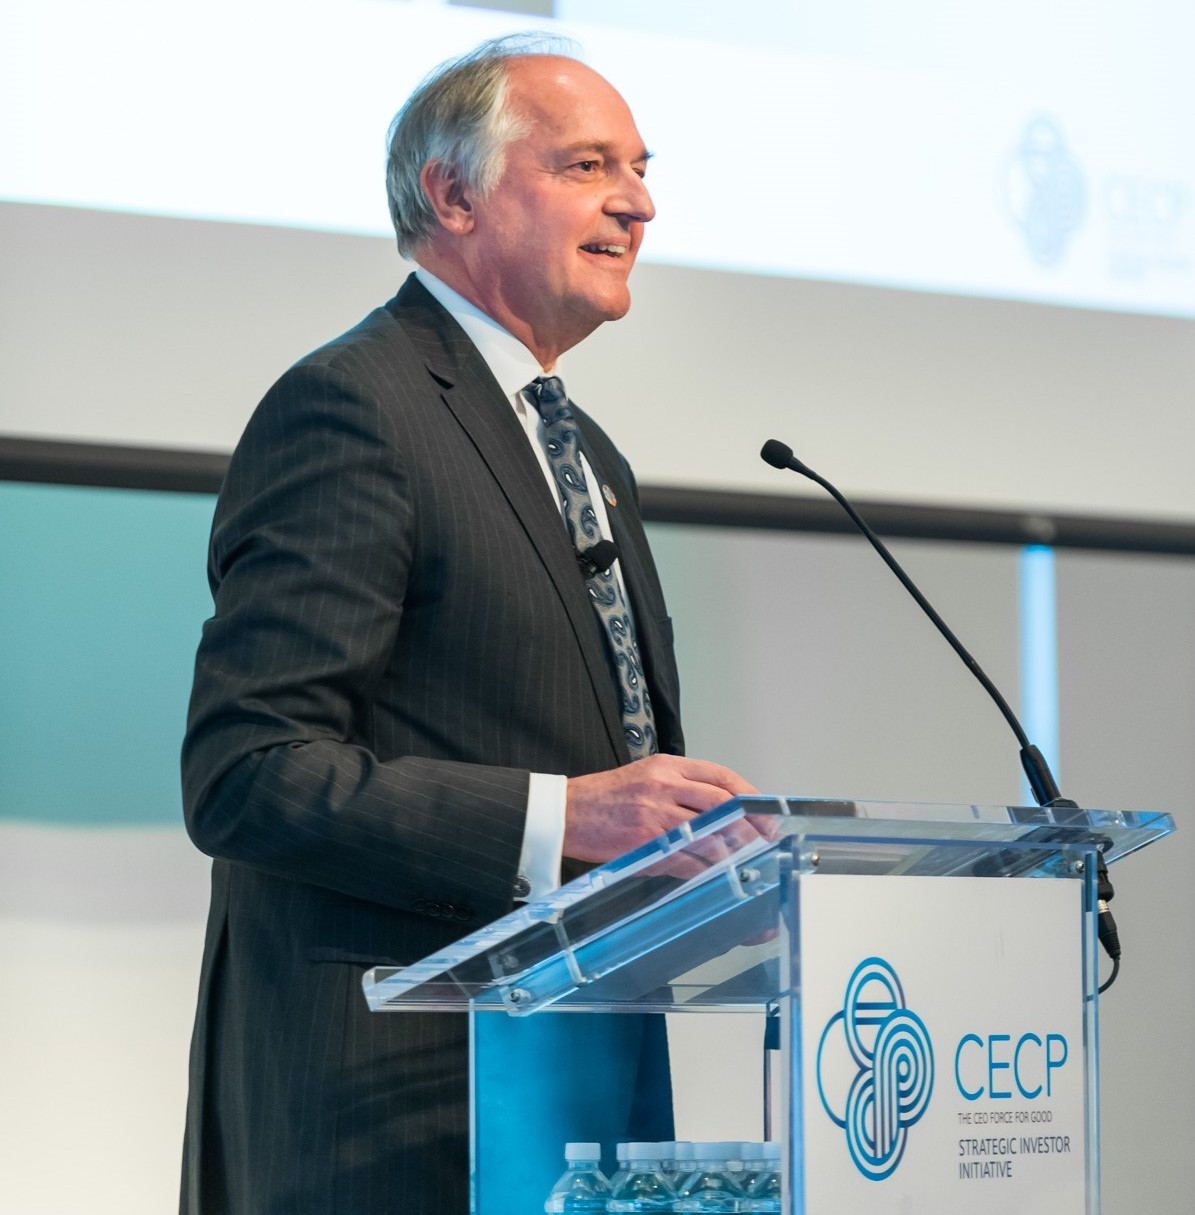 Paul Polman wants to disrupt short-termism